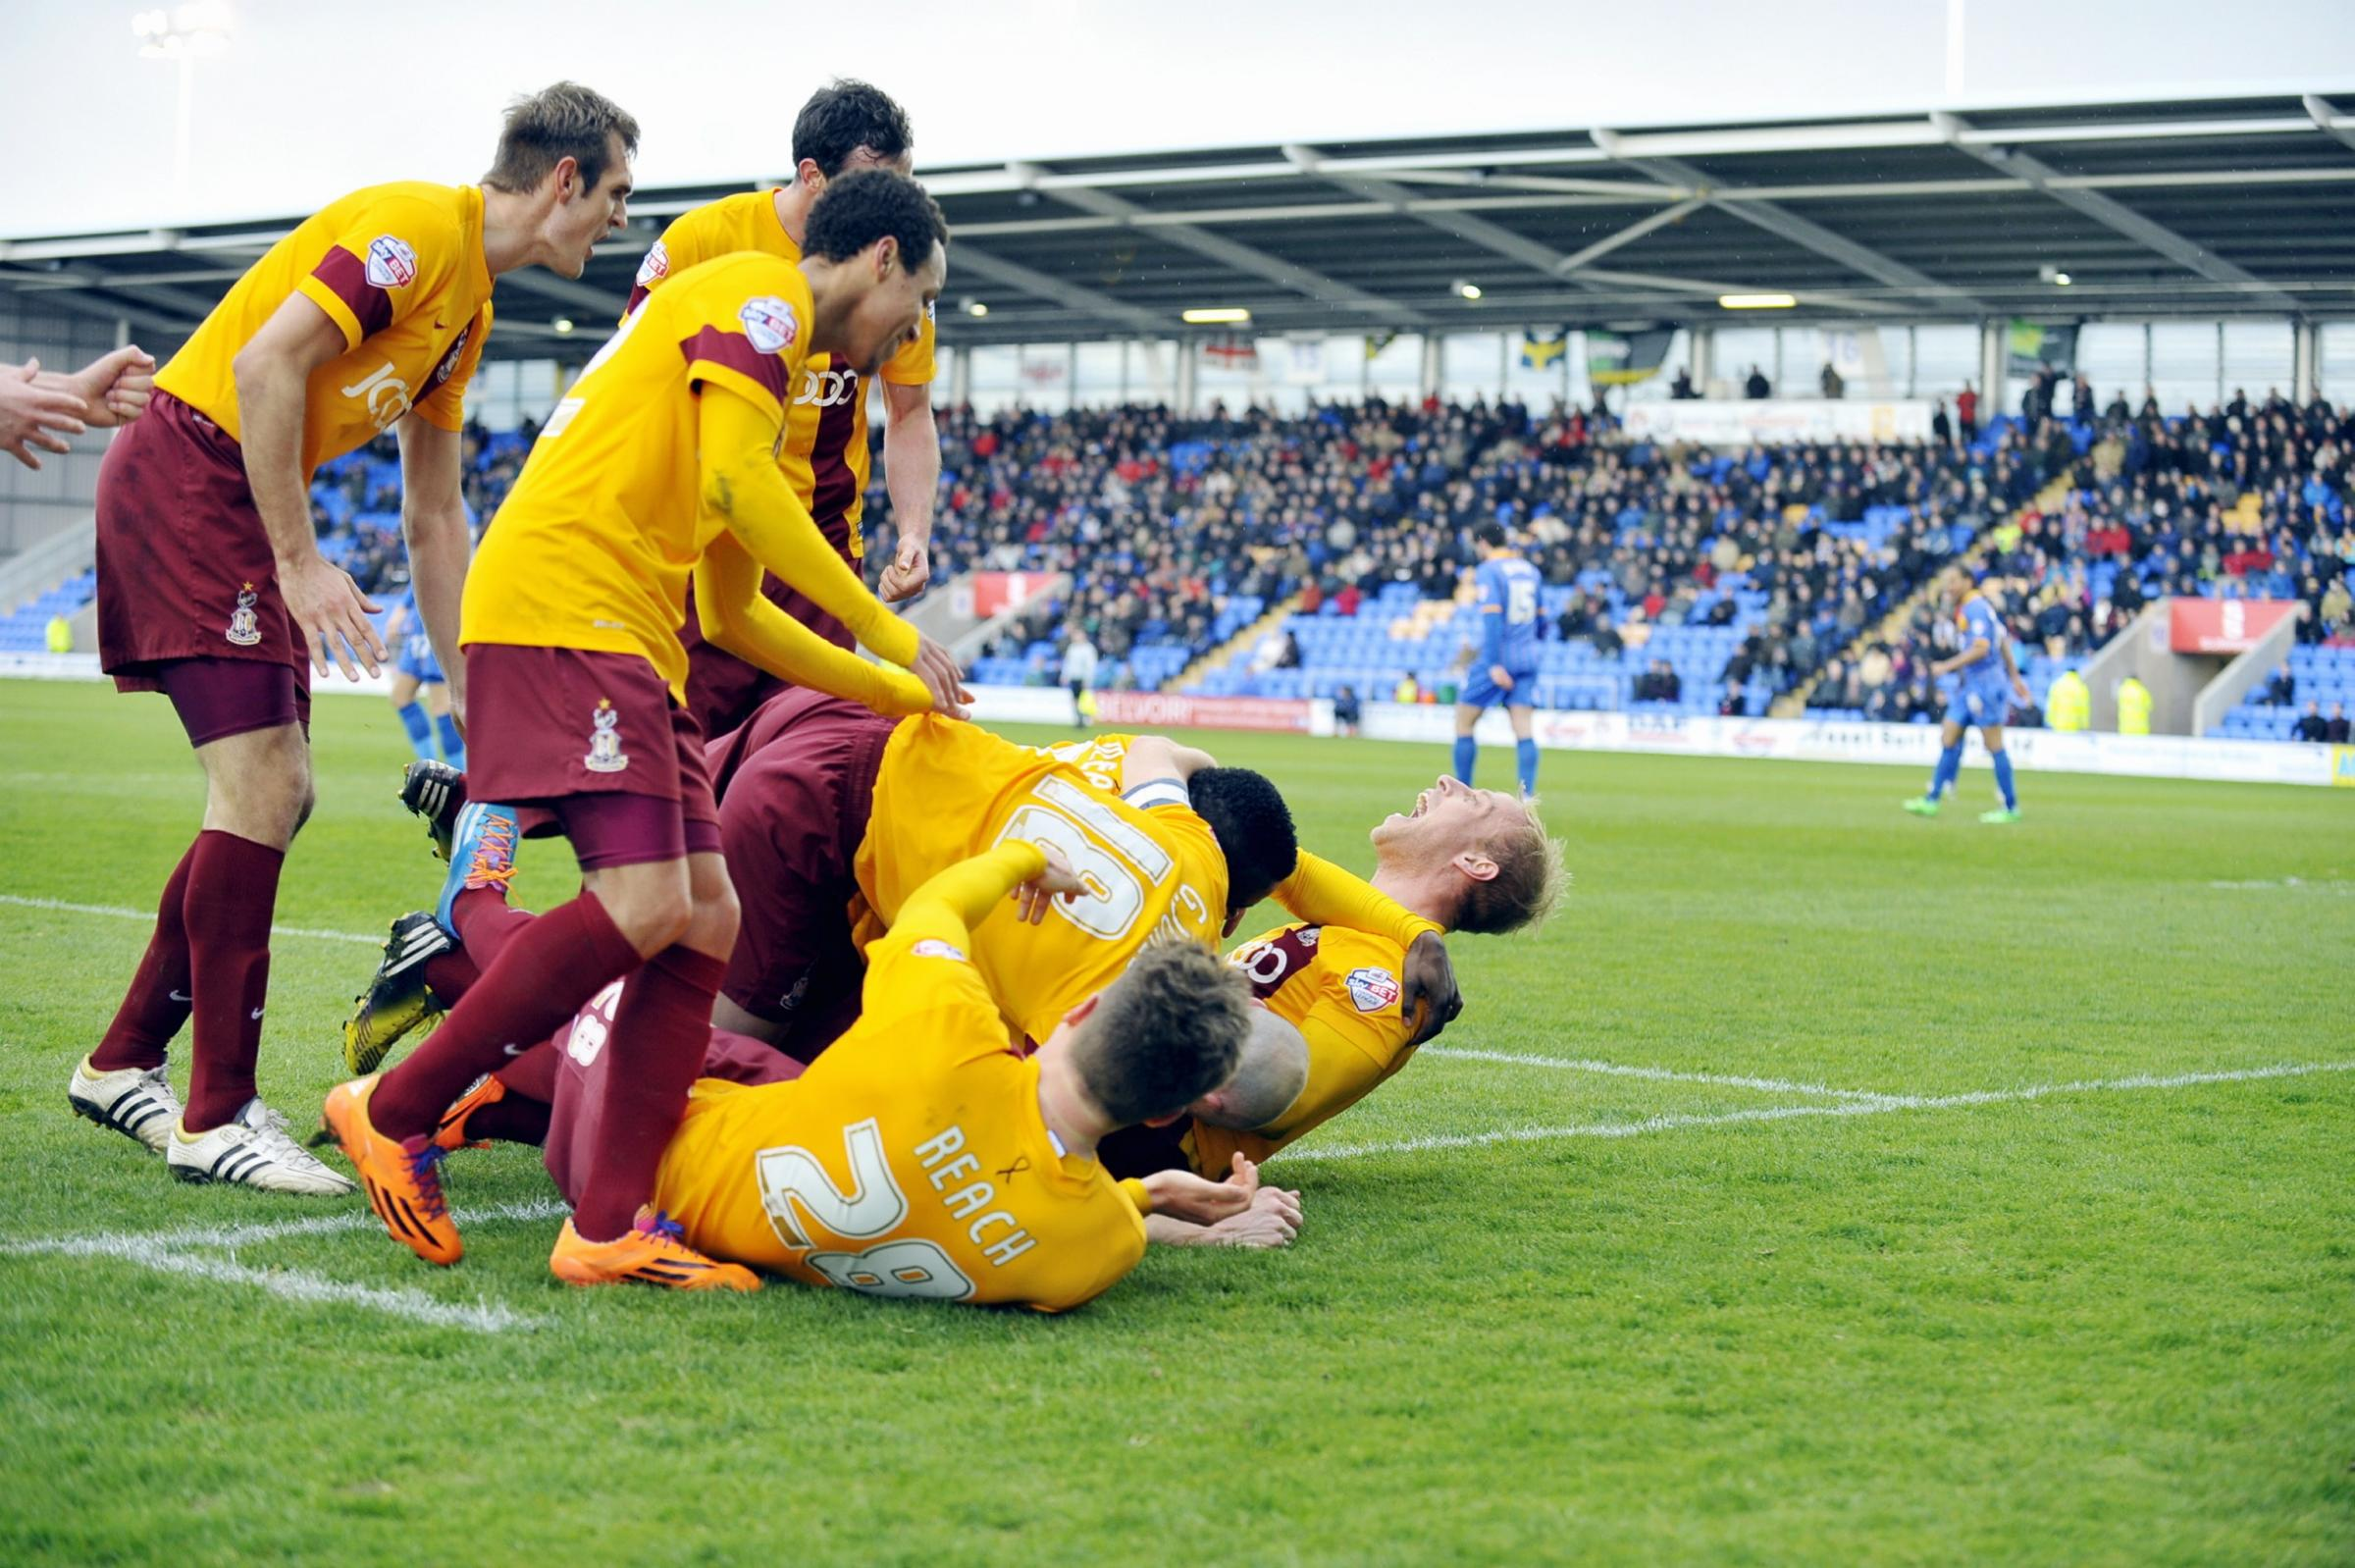 Bradford City lose banker – but what did you expect?